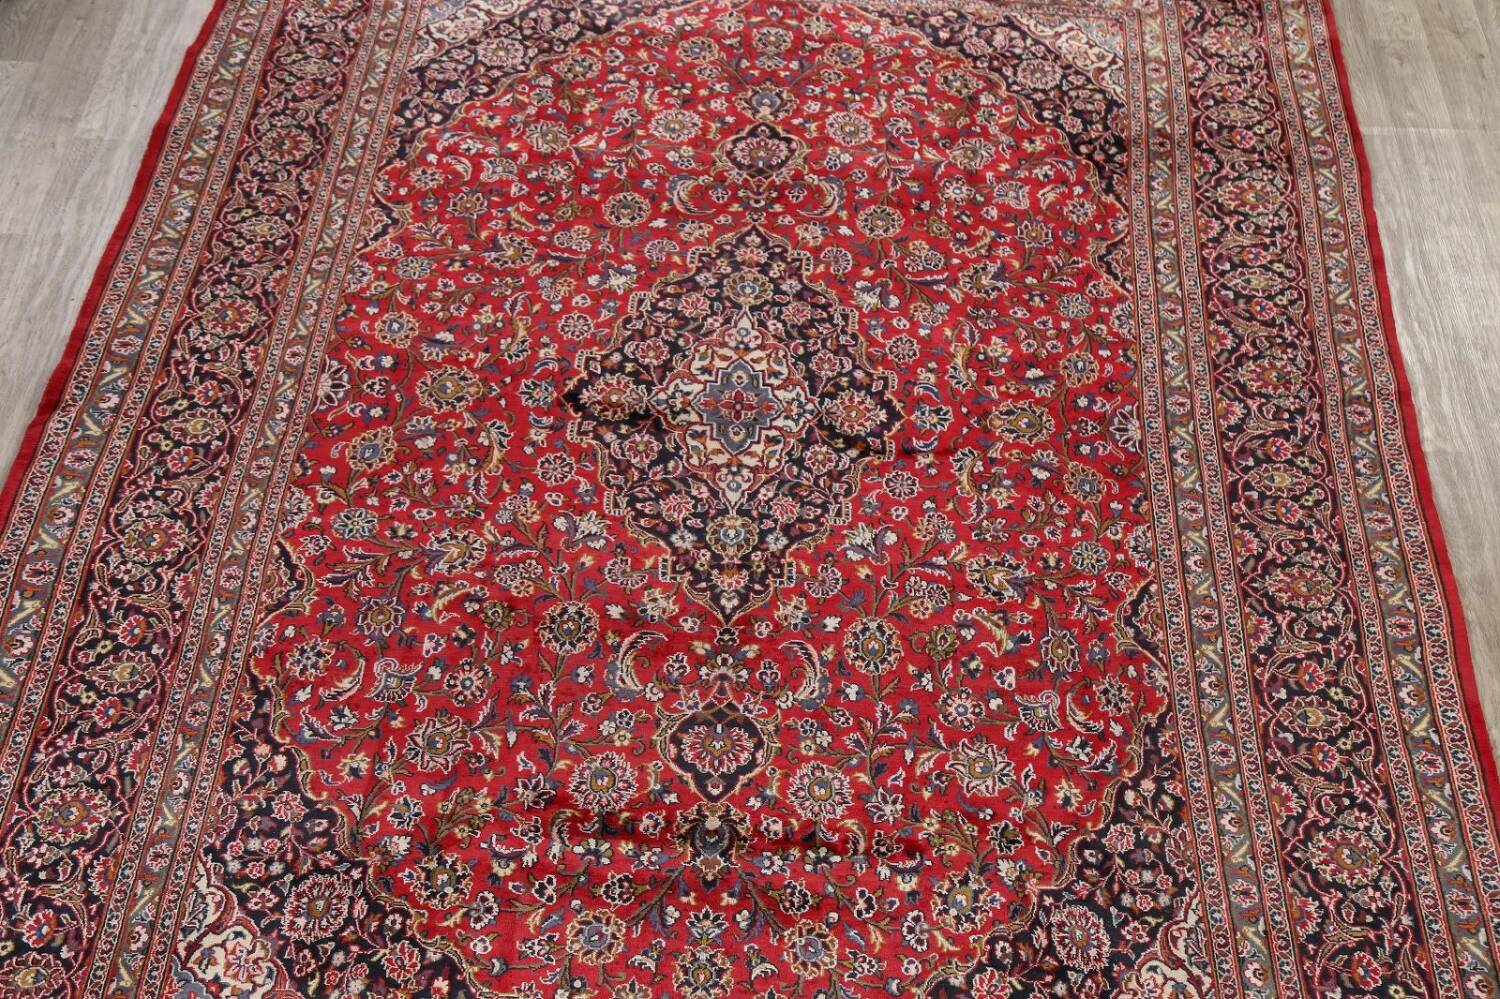 Vintage Floral Mashad Persian Red Area Rug 9x13 image 3